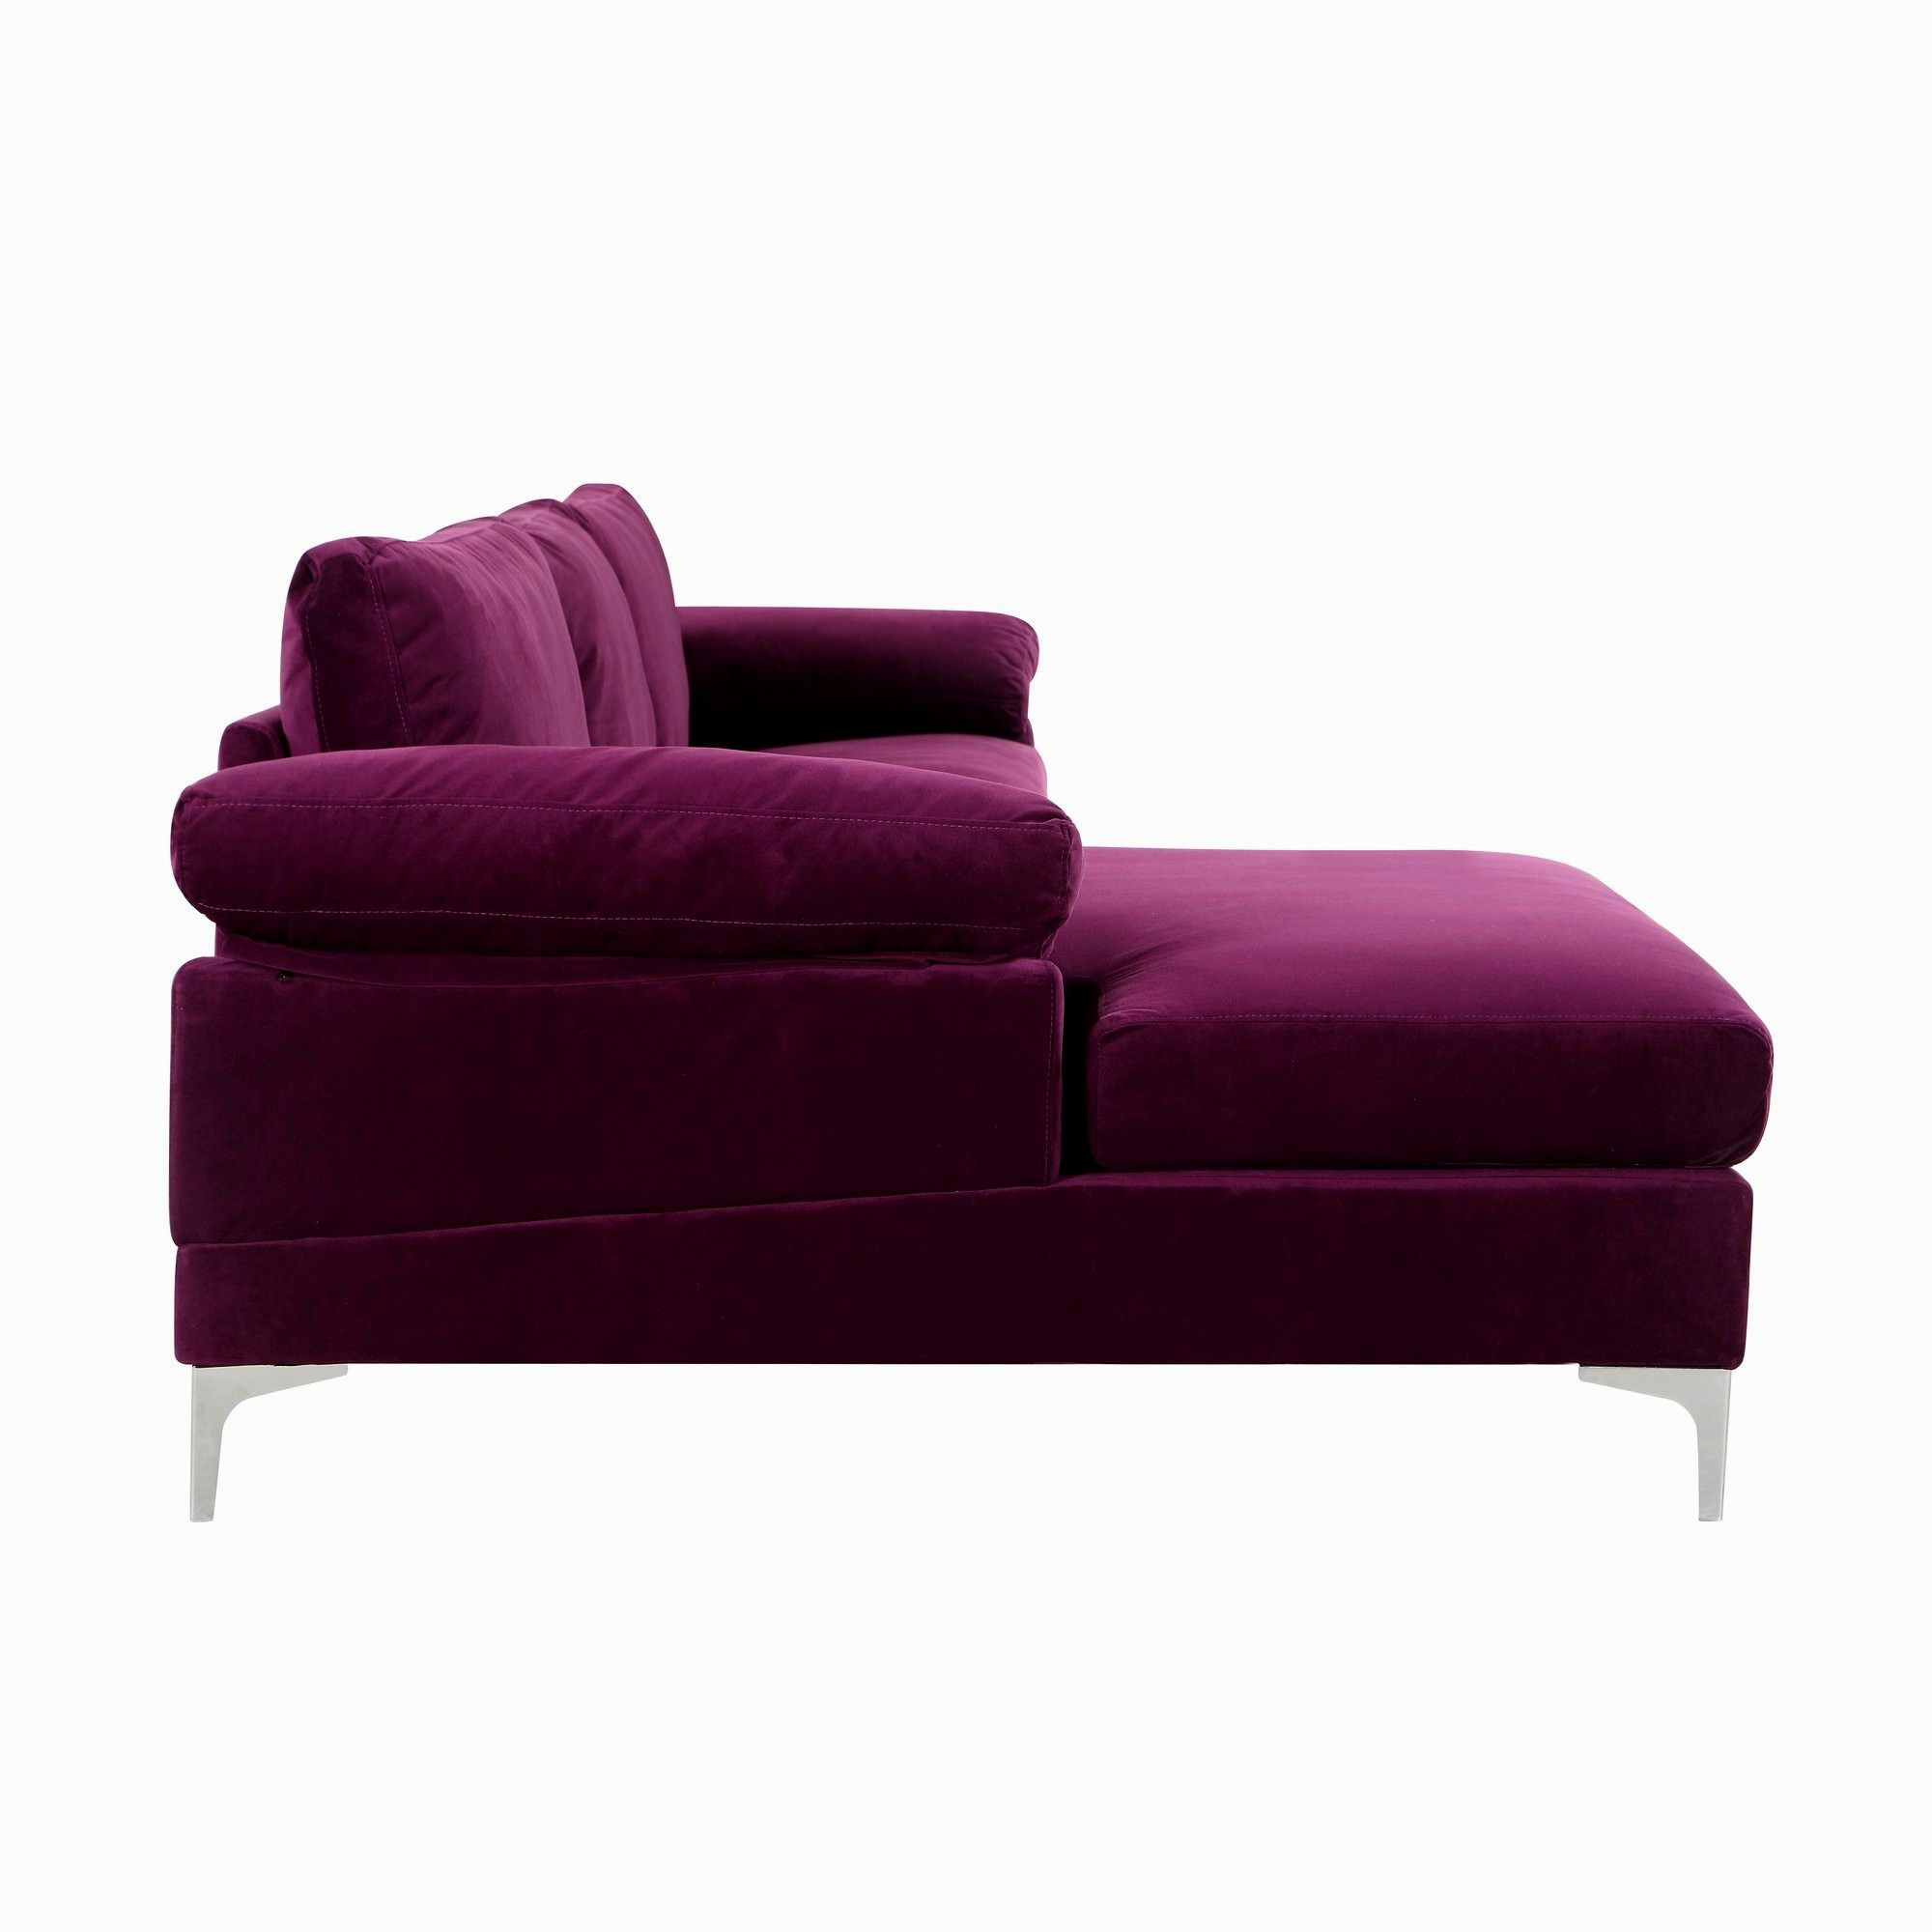 contemporary leather sofa chaise photograph-Beautiful Leather sofa Chaise Inspiration